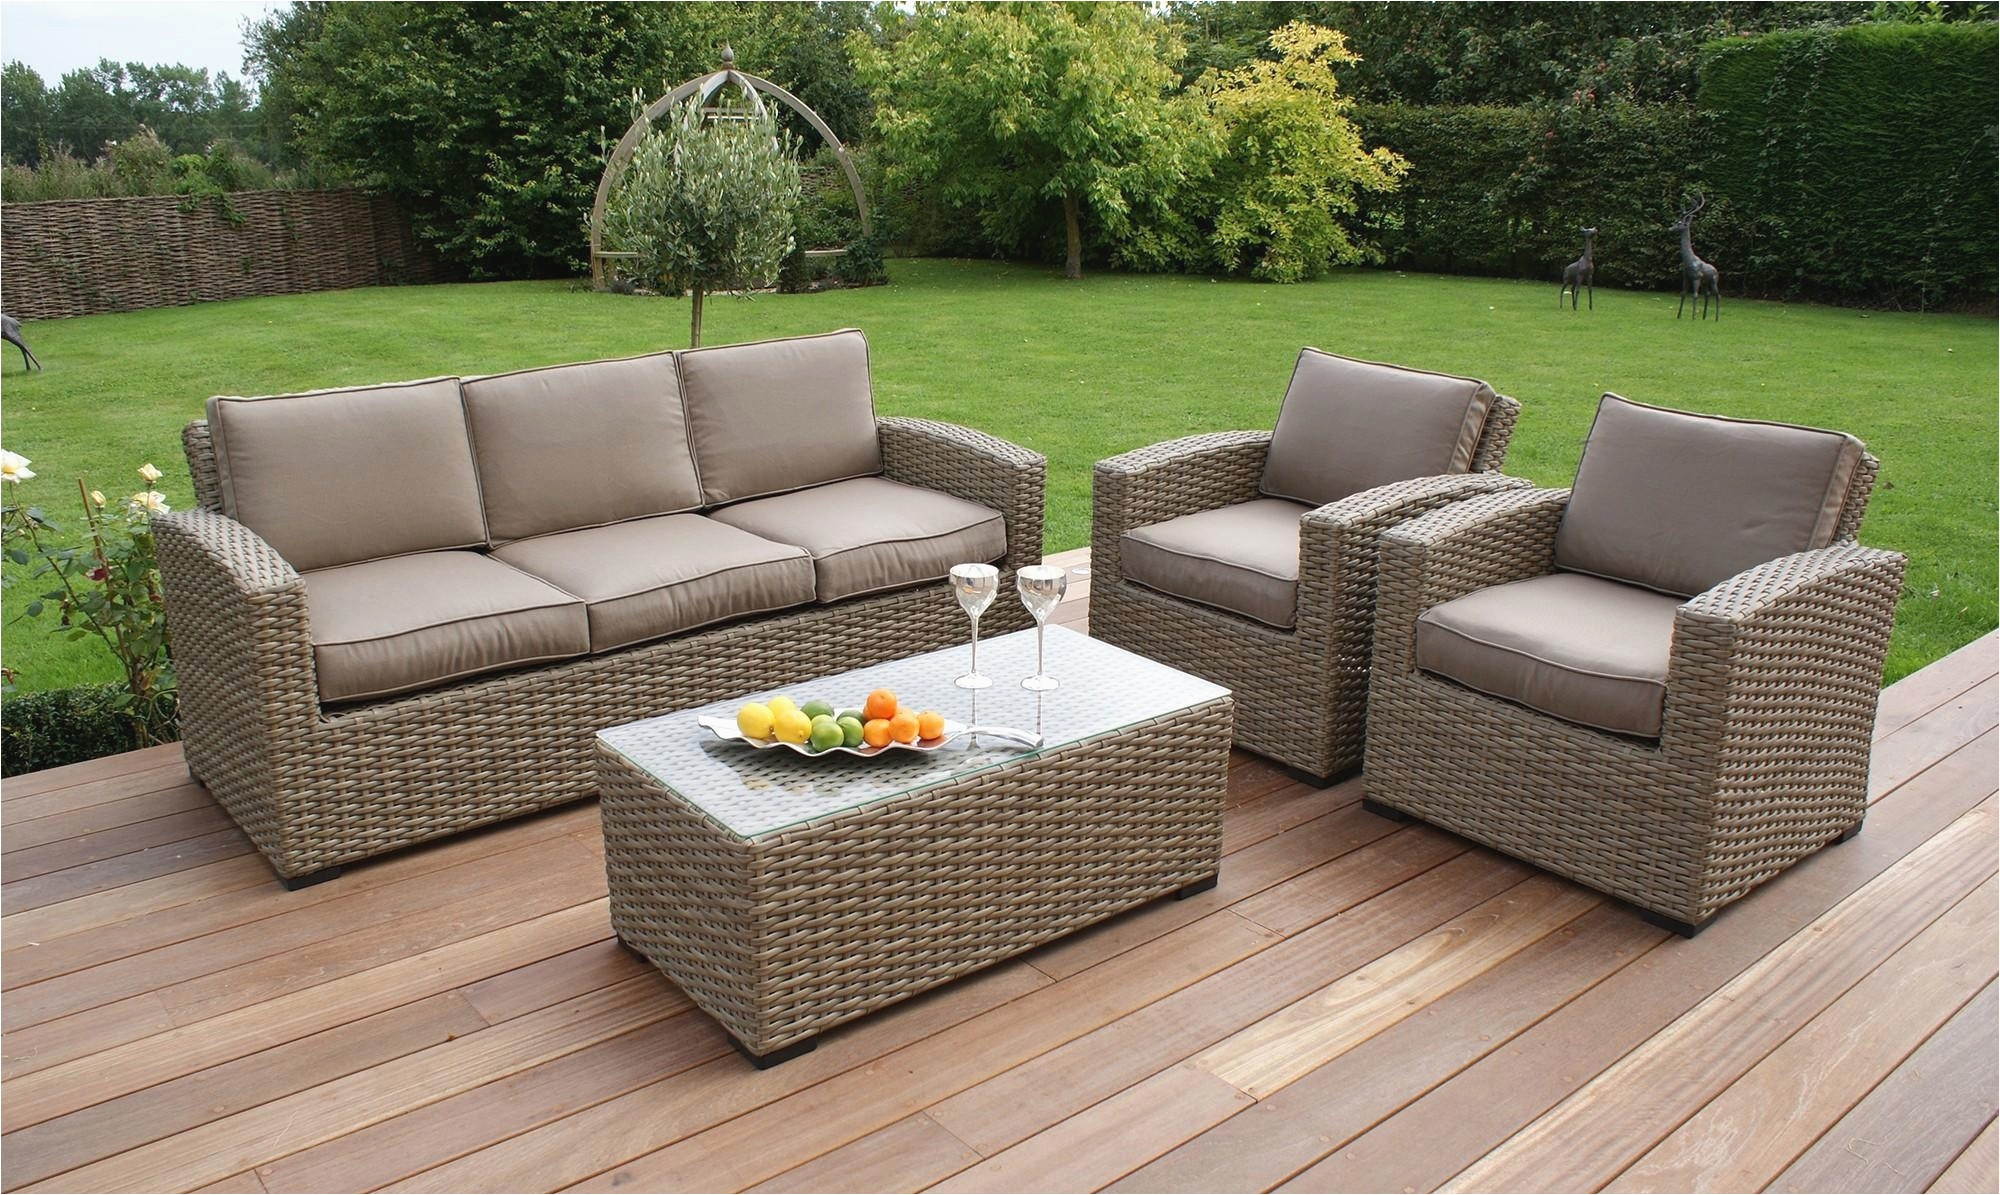 buy used patio furniture awesome outdoor sofa 0d patio chairs sale concept used outdoor furniture